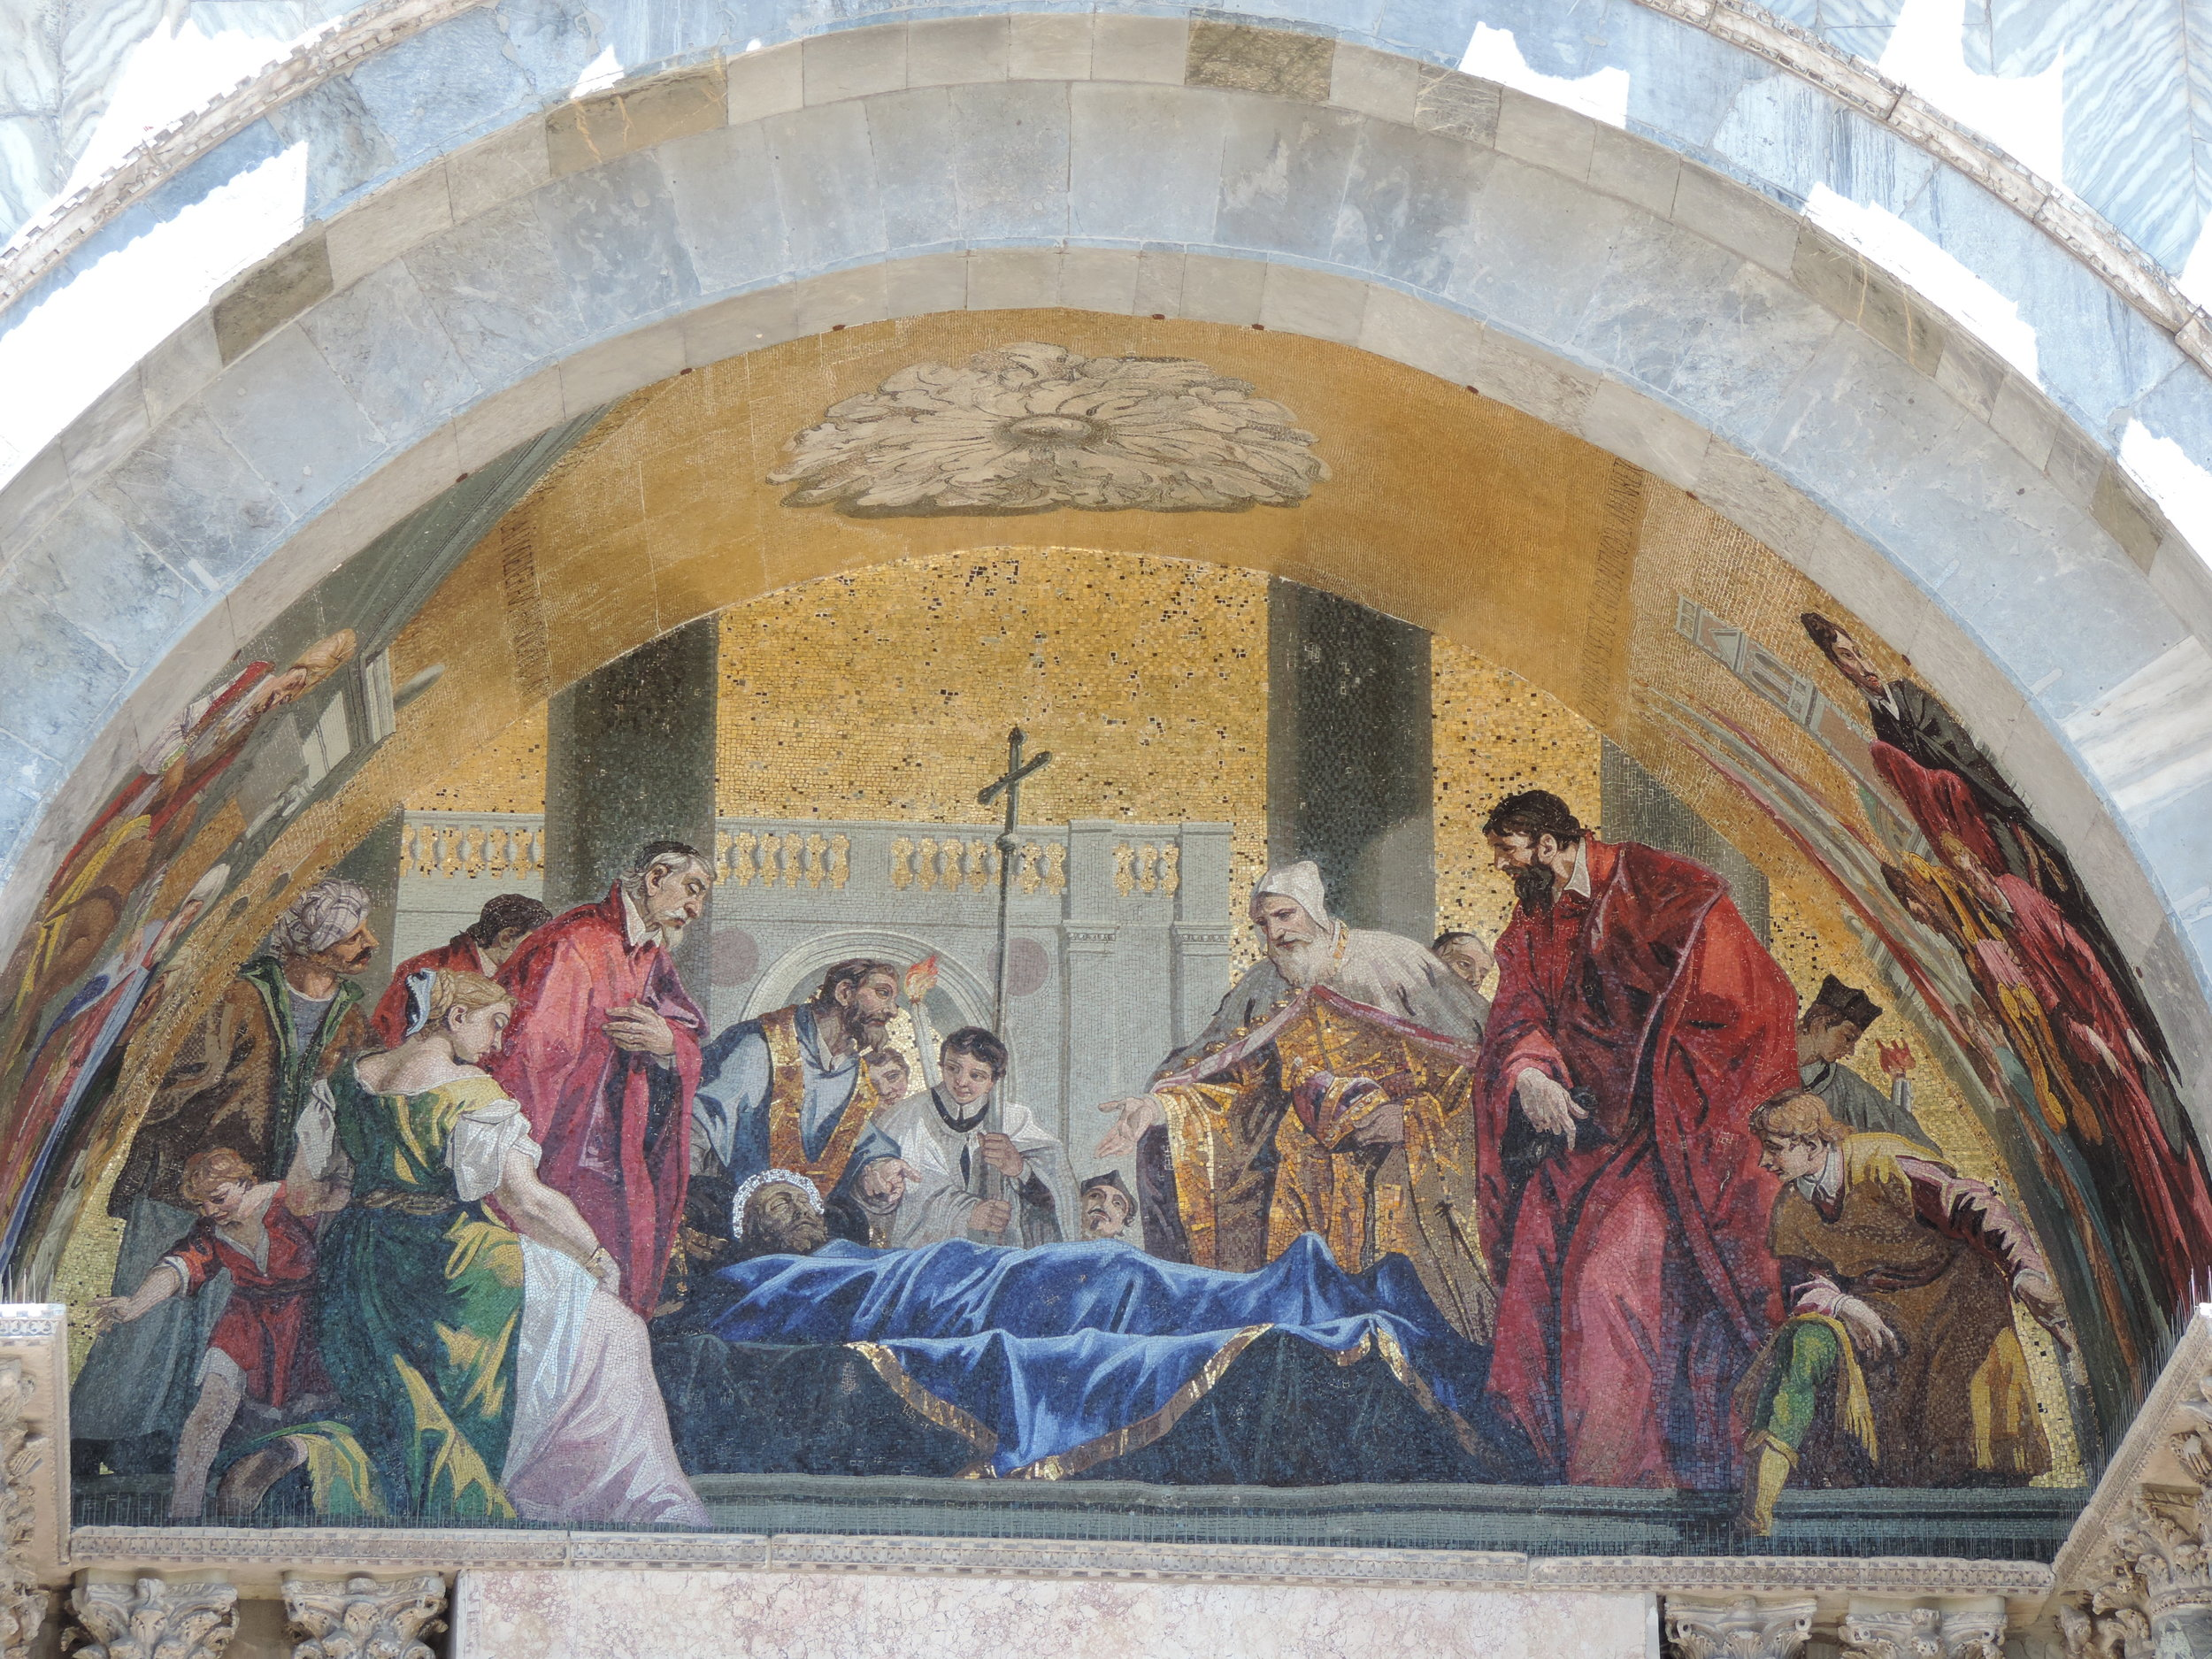 Religious imagery on the facade of the Basilica